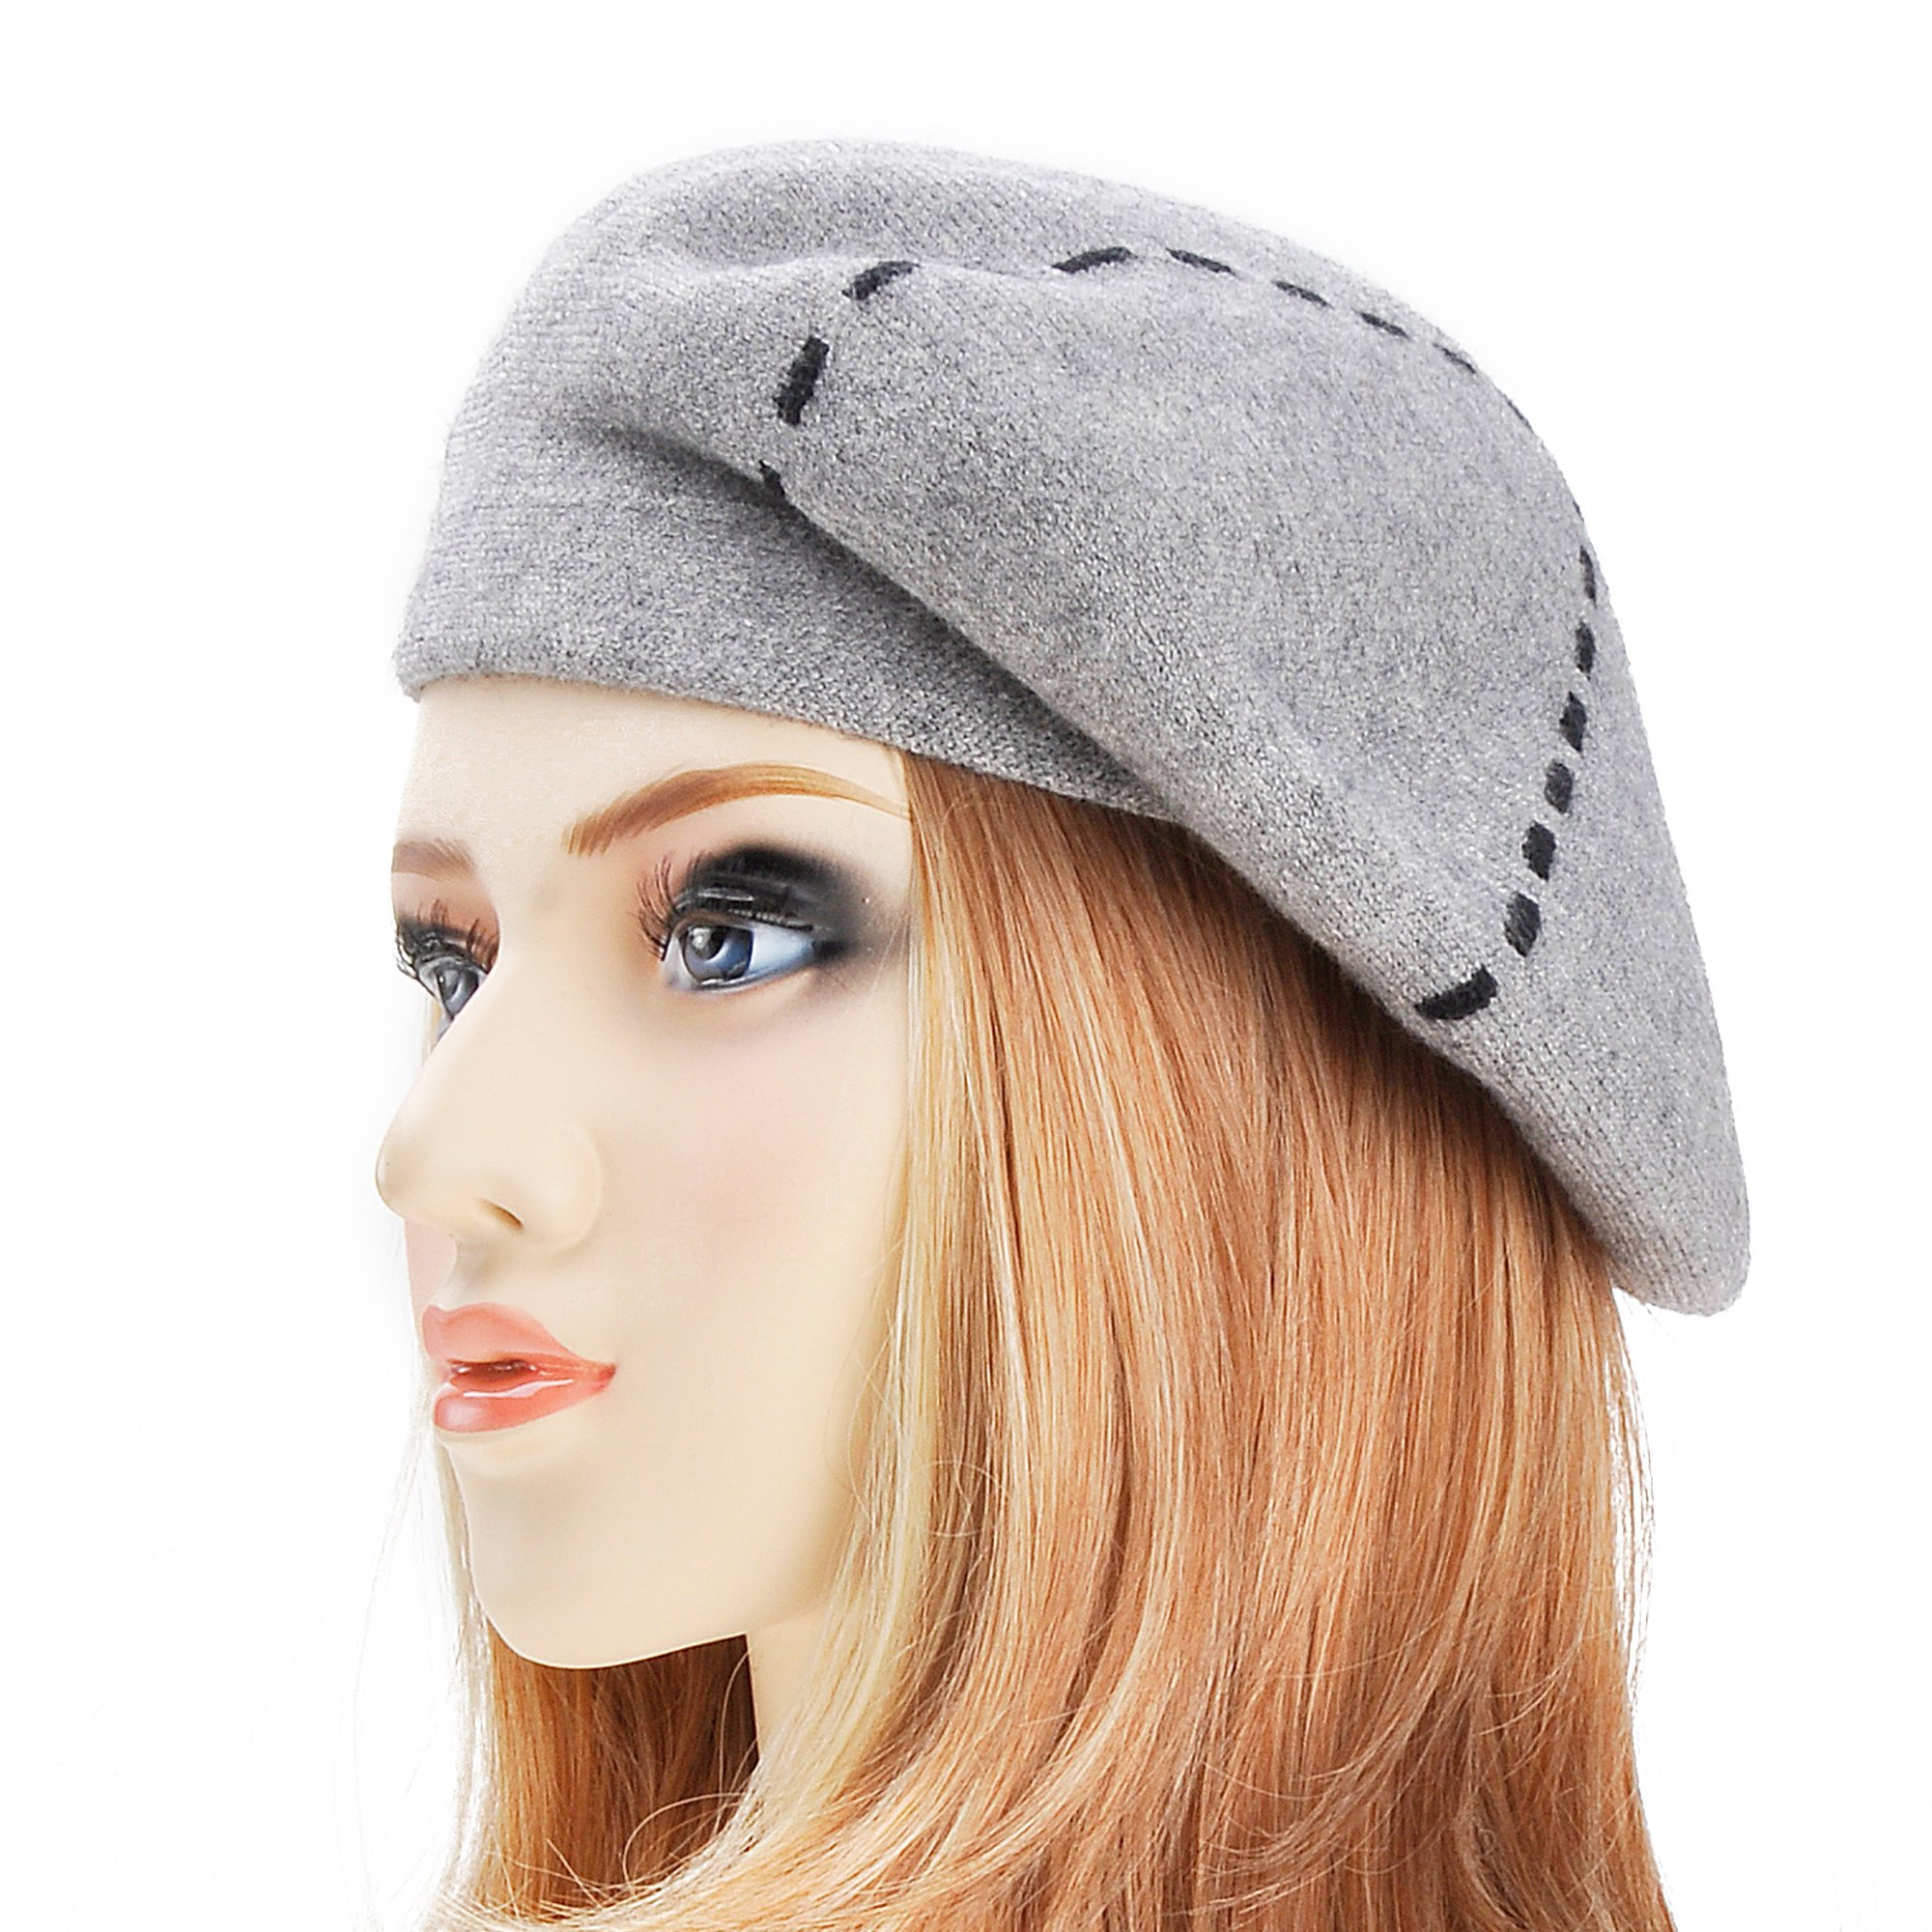 ZLYC Womens Reversible Cashmere Beret Hat Double Layers French Beret, Gray by ZLYC (Image #1)